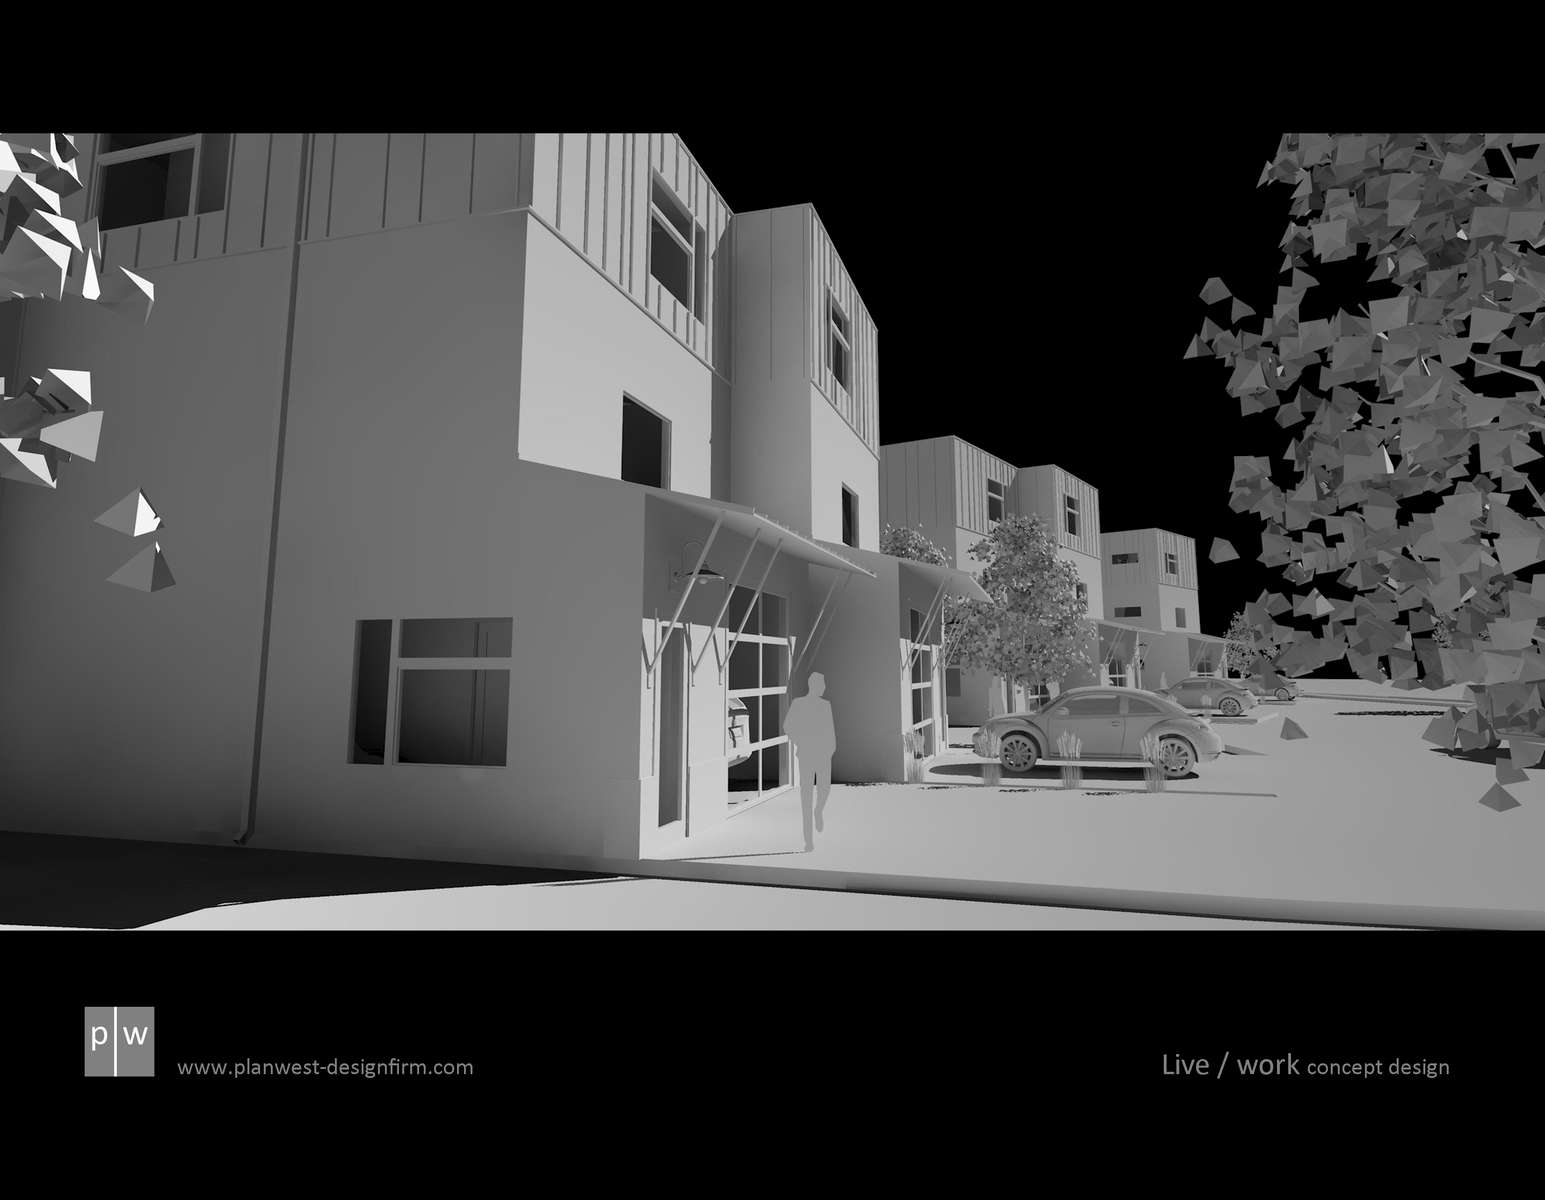 plan-west-design-firm-_-projects-in-process-705